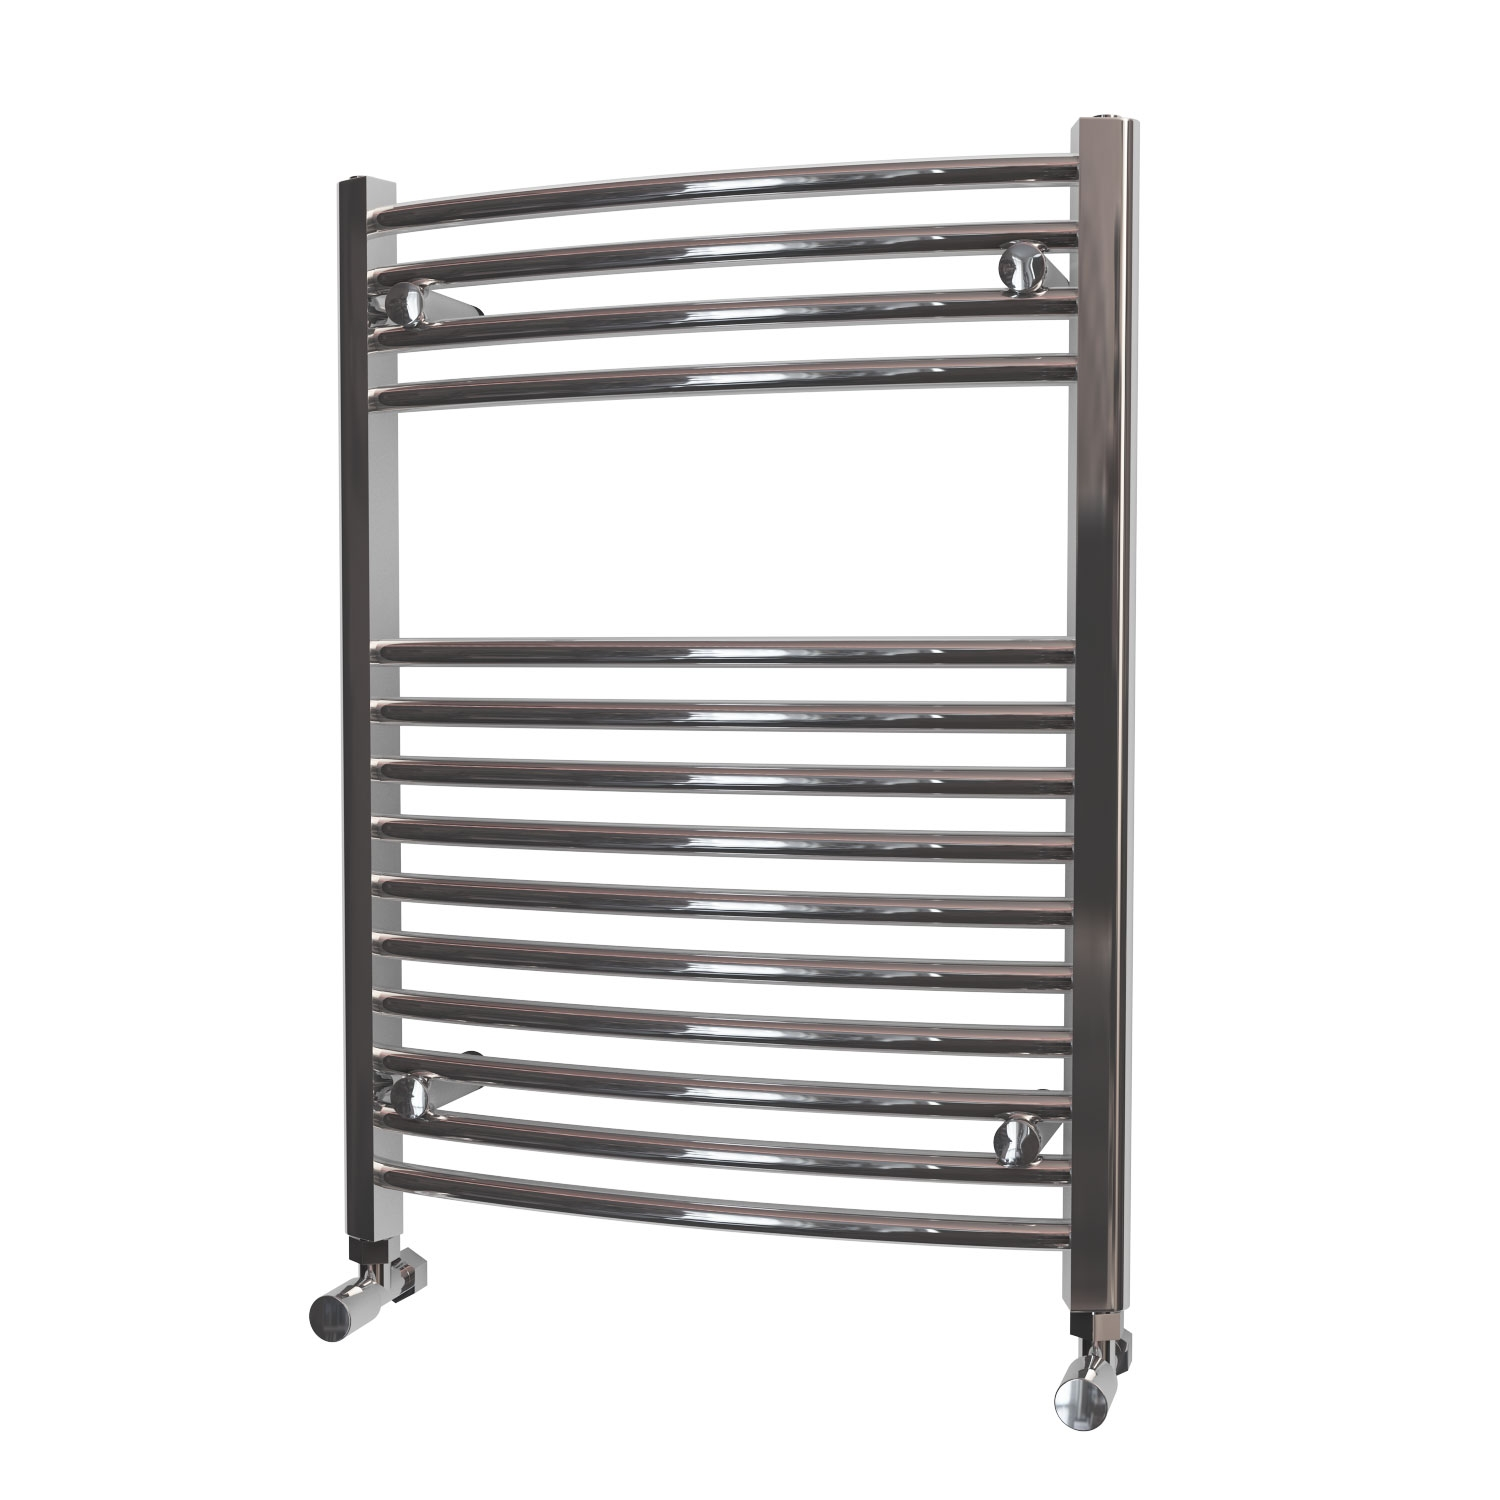 MaxHeat Camborne Curved Towel Rail, 800mm High x 600mm Wide, Chrome